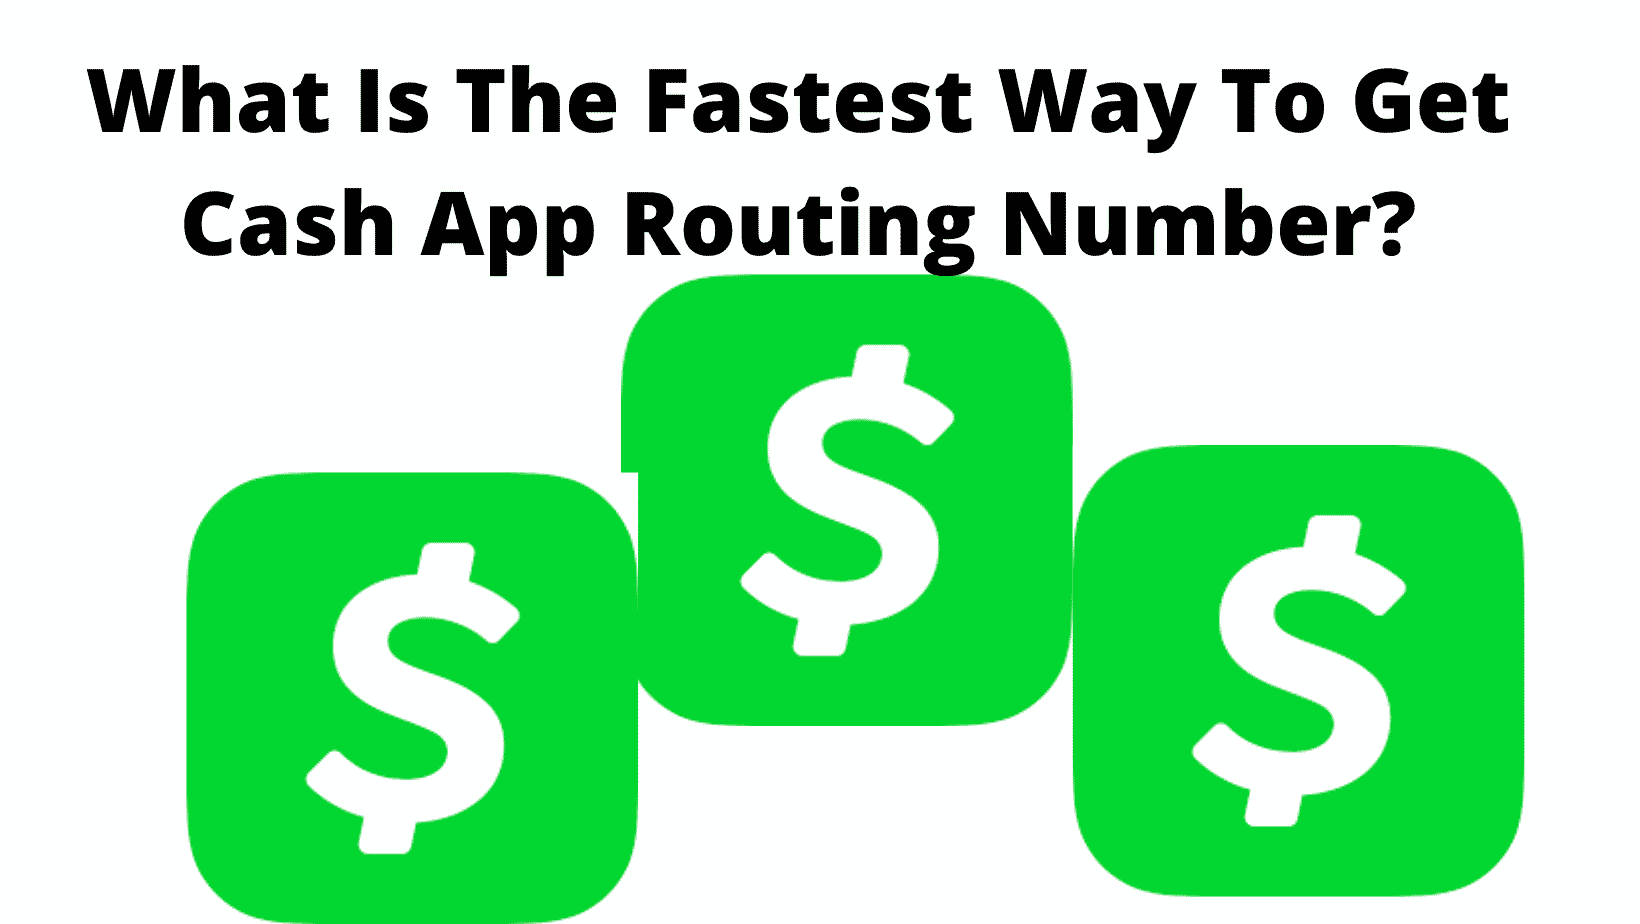 How To Get Cash App Routing Number